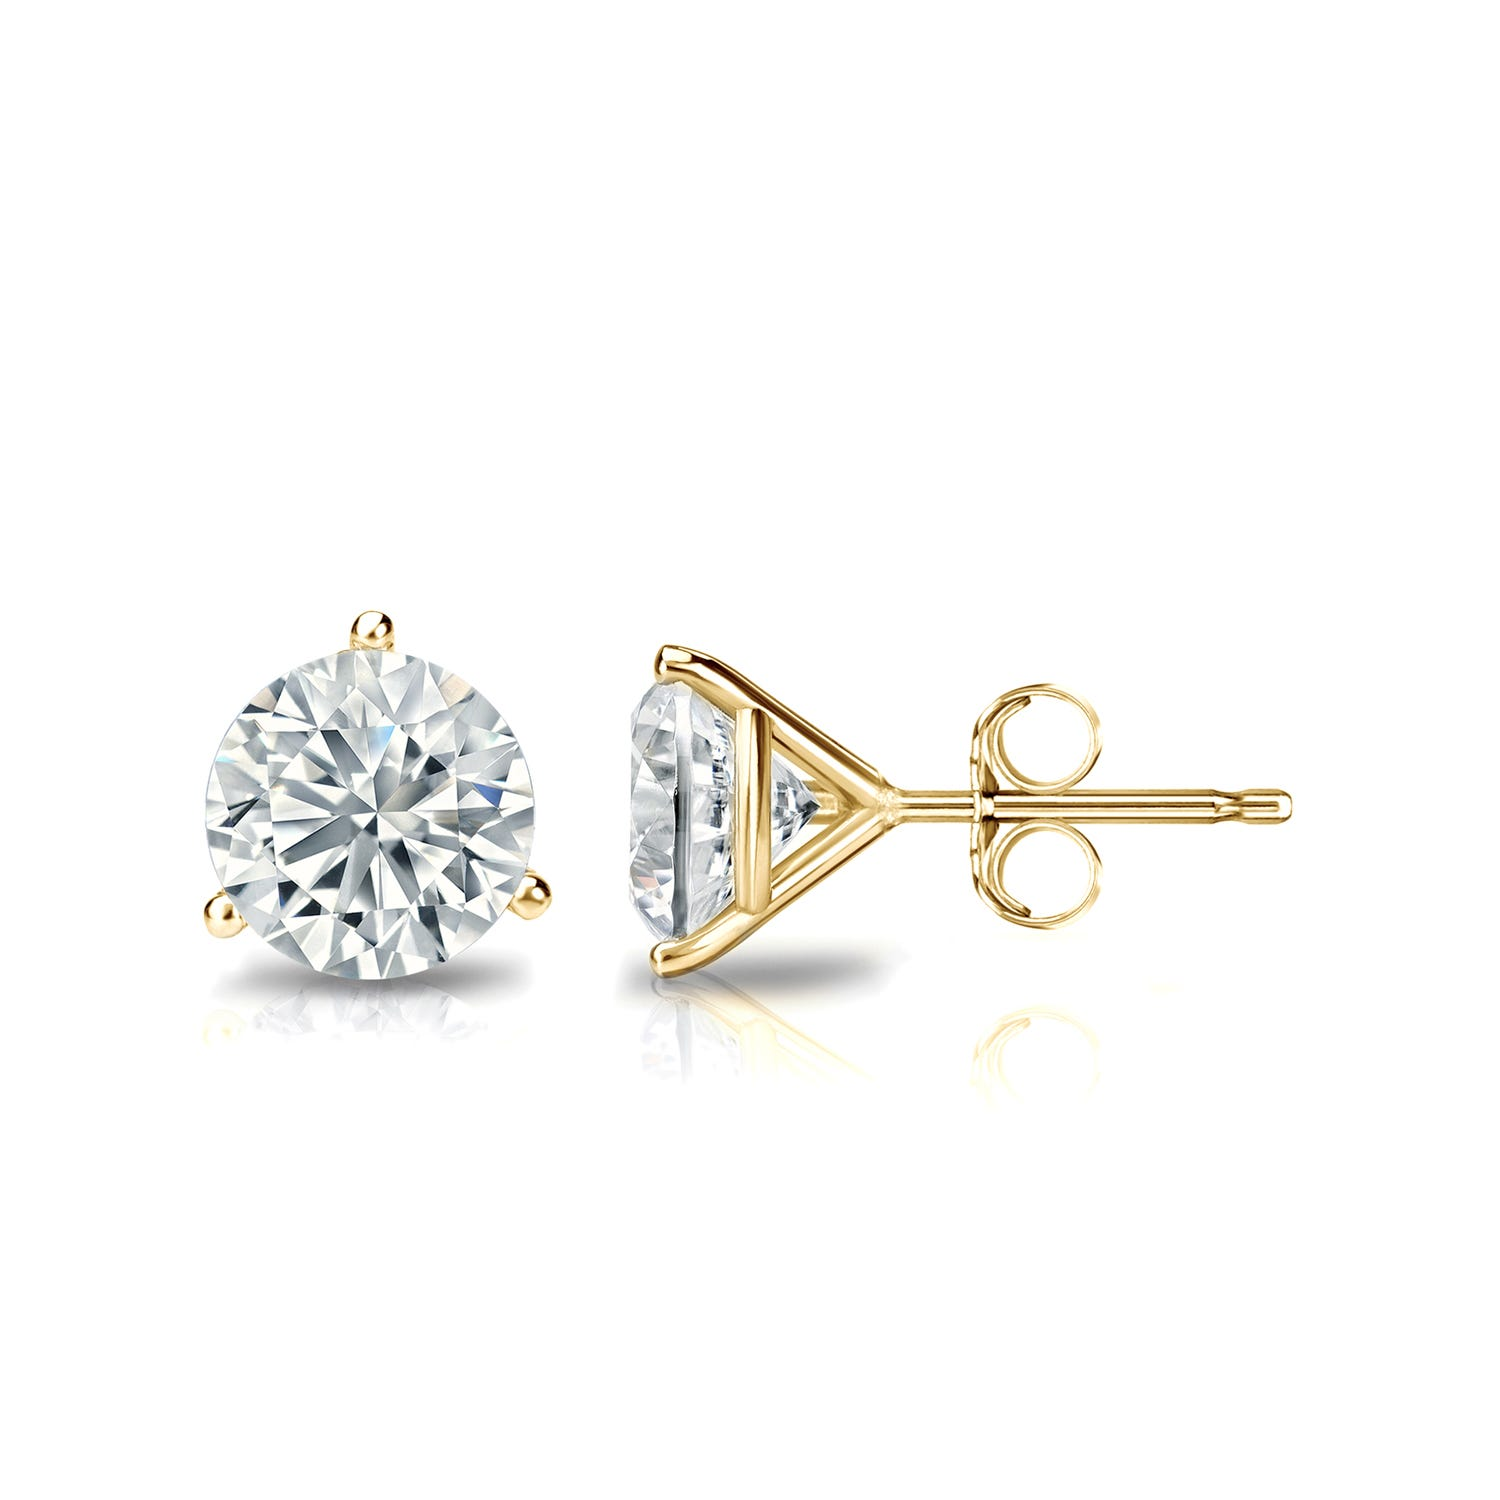 1 CTTW Round Diamond Solitaire Stud Earrings IJ SI1 in 18K Yellow Gold IGI Certified 3-Prong Setting